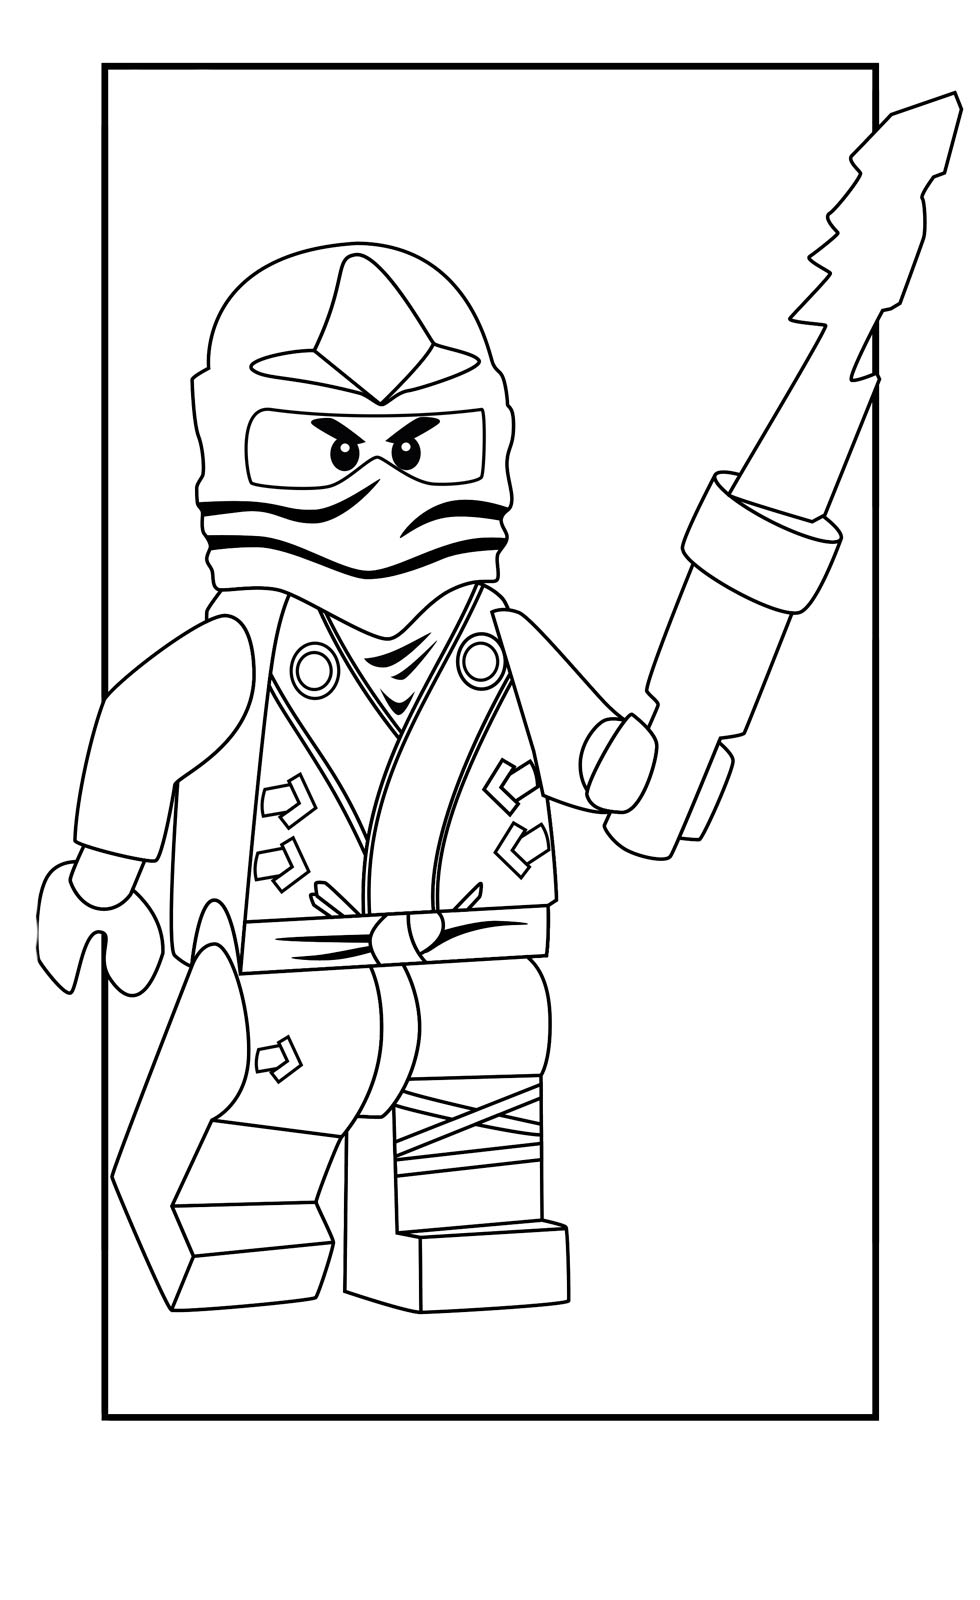 lego coloring pages to print free lego ninjago coloring pages free printable lego ninjago pages coloring to lego print free